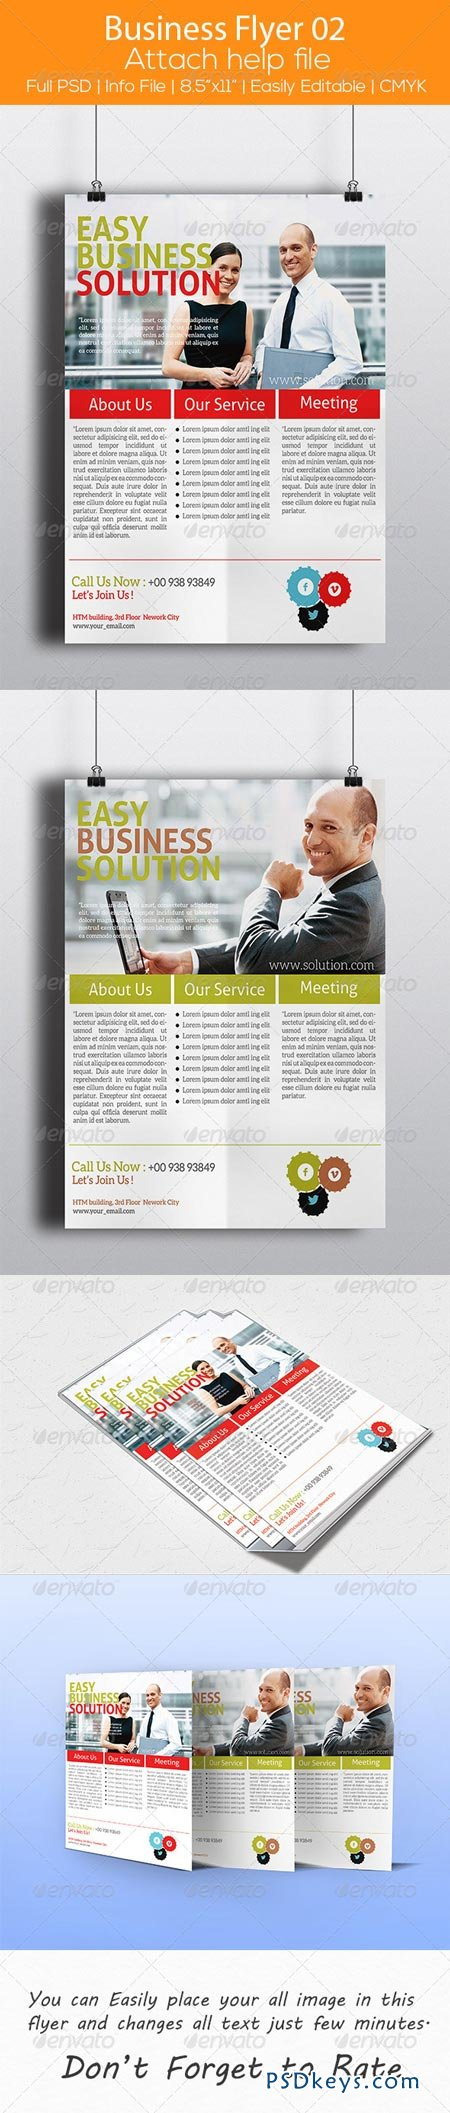 Business Flyer 02 6950809